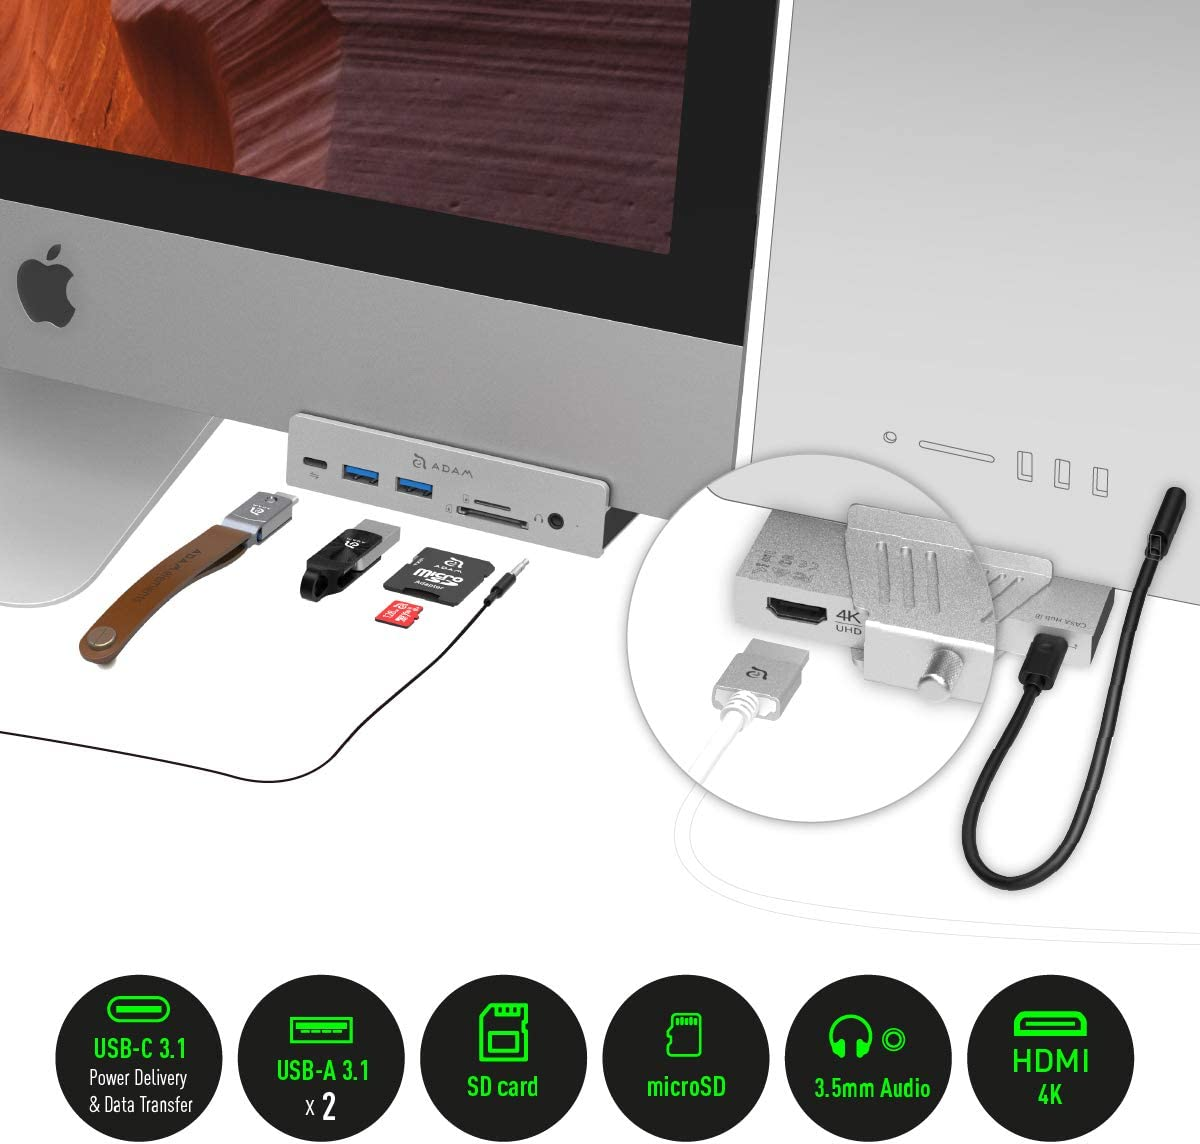 ADAM elements CASA Hub i8 - Front Facing USB-C Hub for iMac & iMac Pro 2017 or Later - USB 3.1 Gen. 1 & USB-C Ports, SD and microSD Card Readers and 3.5mm Audio Out - Rear Facing HDMI Port (4K@30Hz)